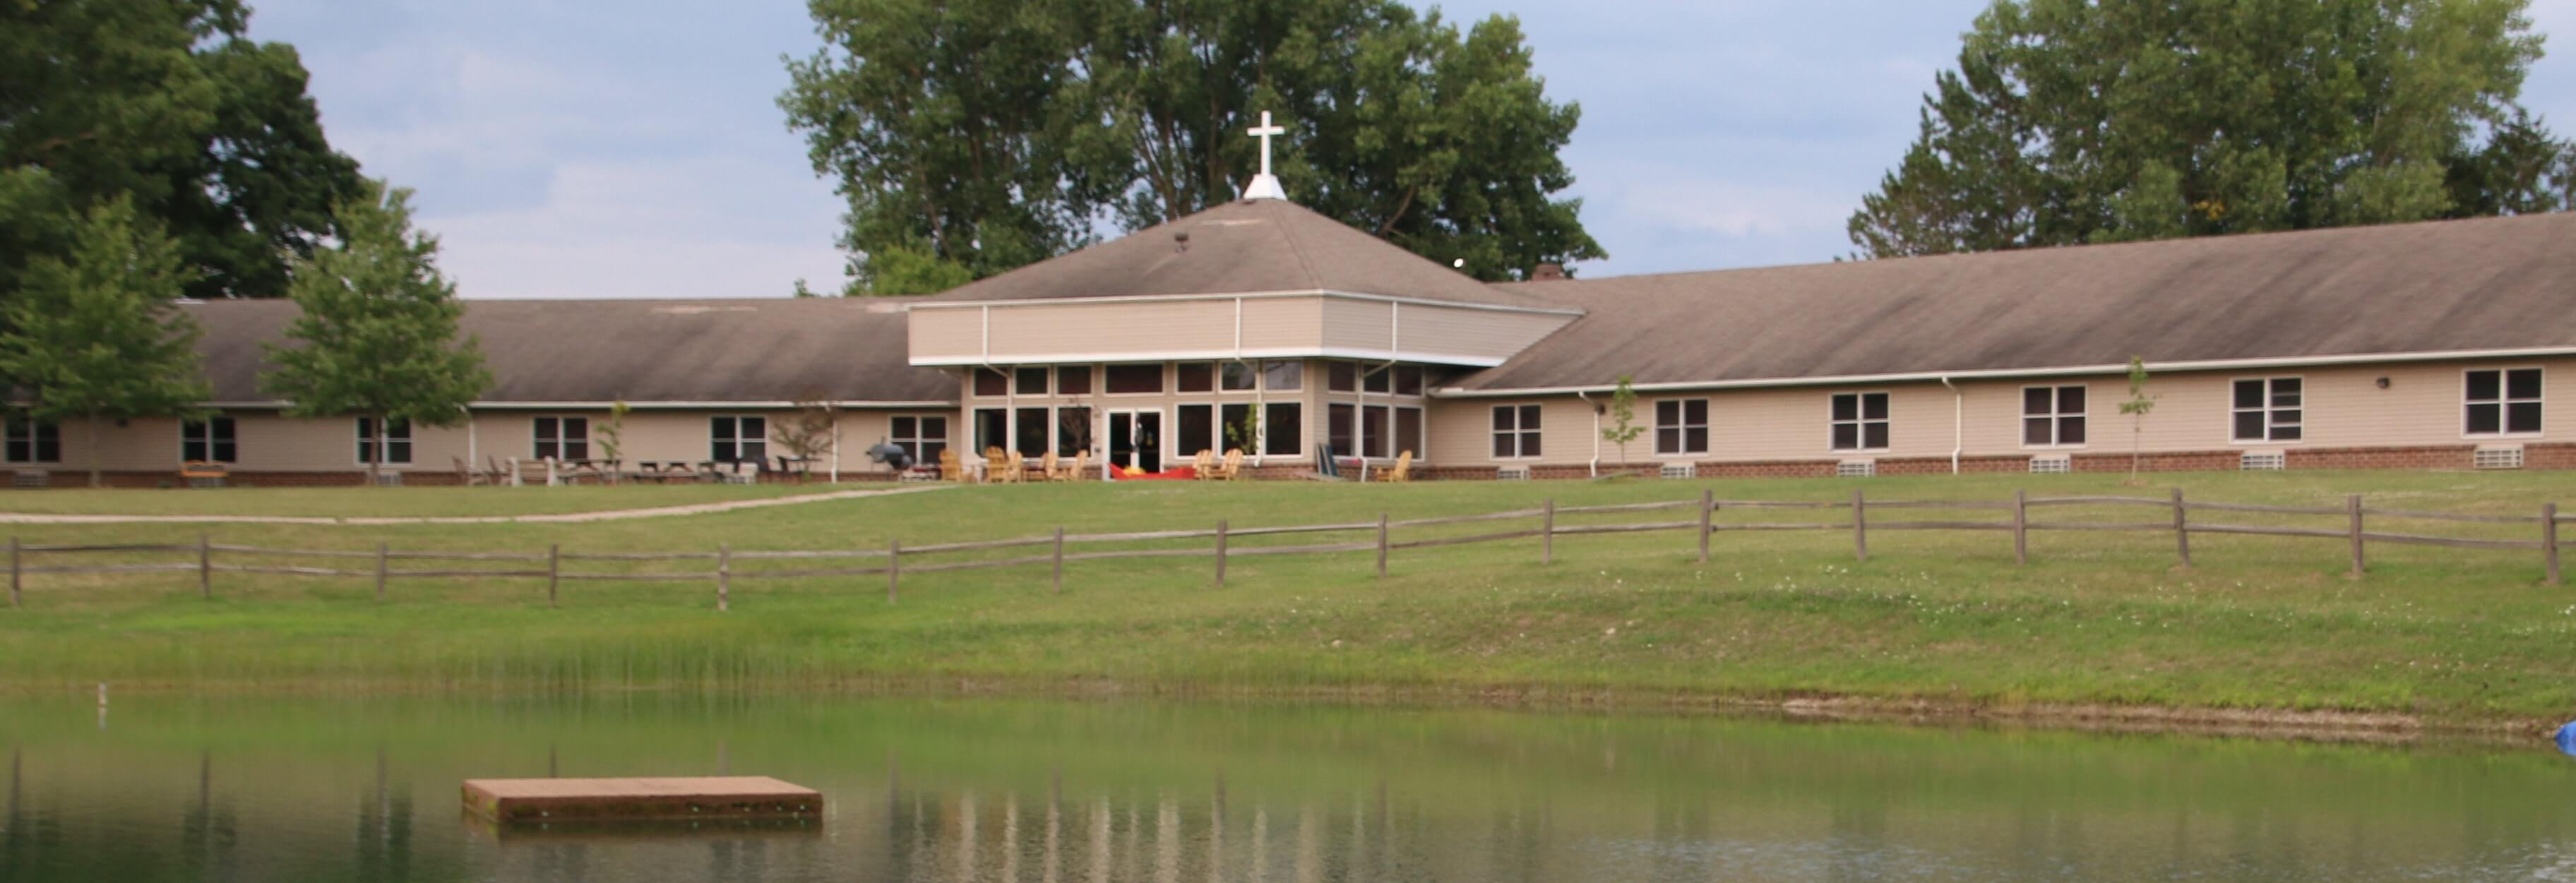 Retreats | West Ohio Conference of The United Methodist Church